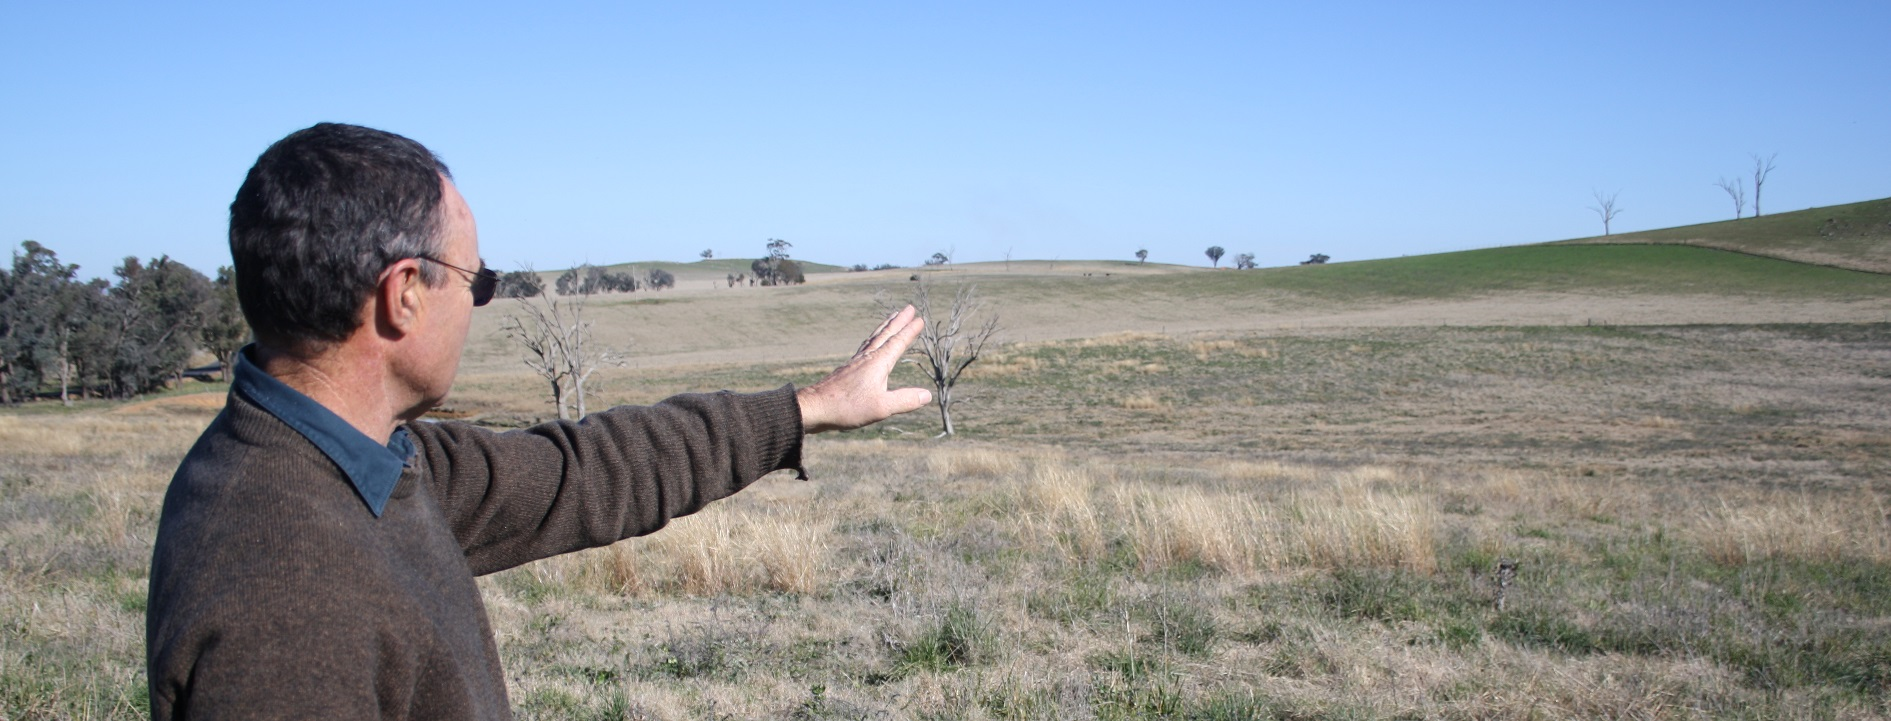 Australian grazier Gary Johnson, appraising tree decline on his farm, 2010.